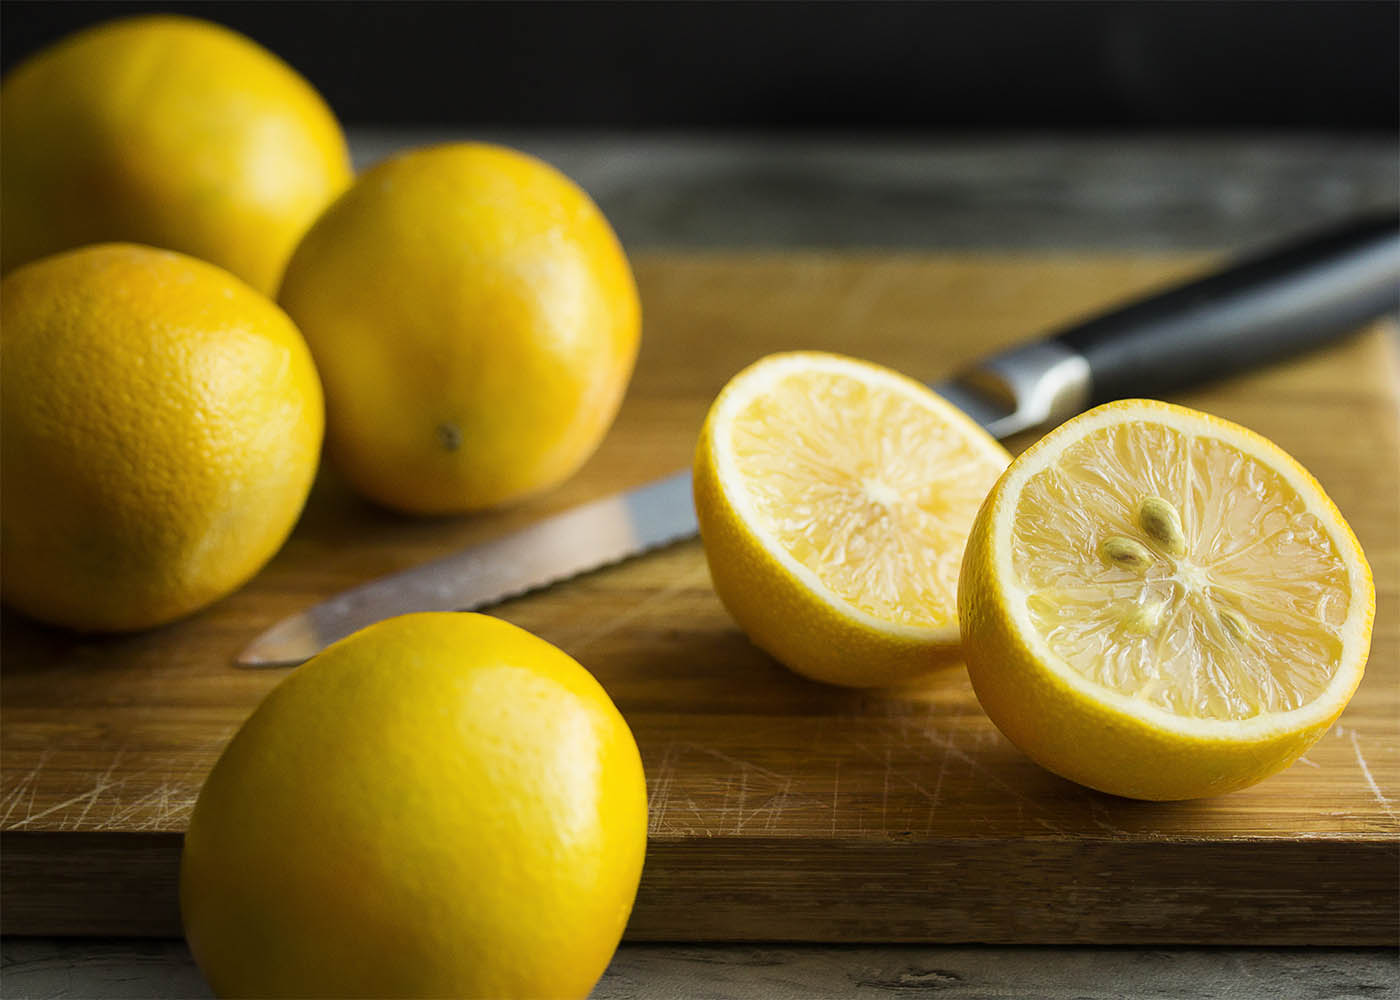 What are Meyer lemons? How do Meyer lemons taste? Origin, flavor, recipes and more answered in this meyer lemon ingredient spotlight. | justalittlebitofbacon.com